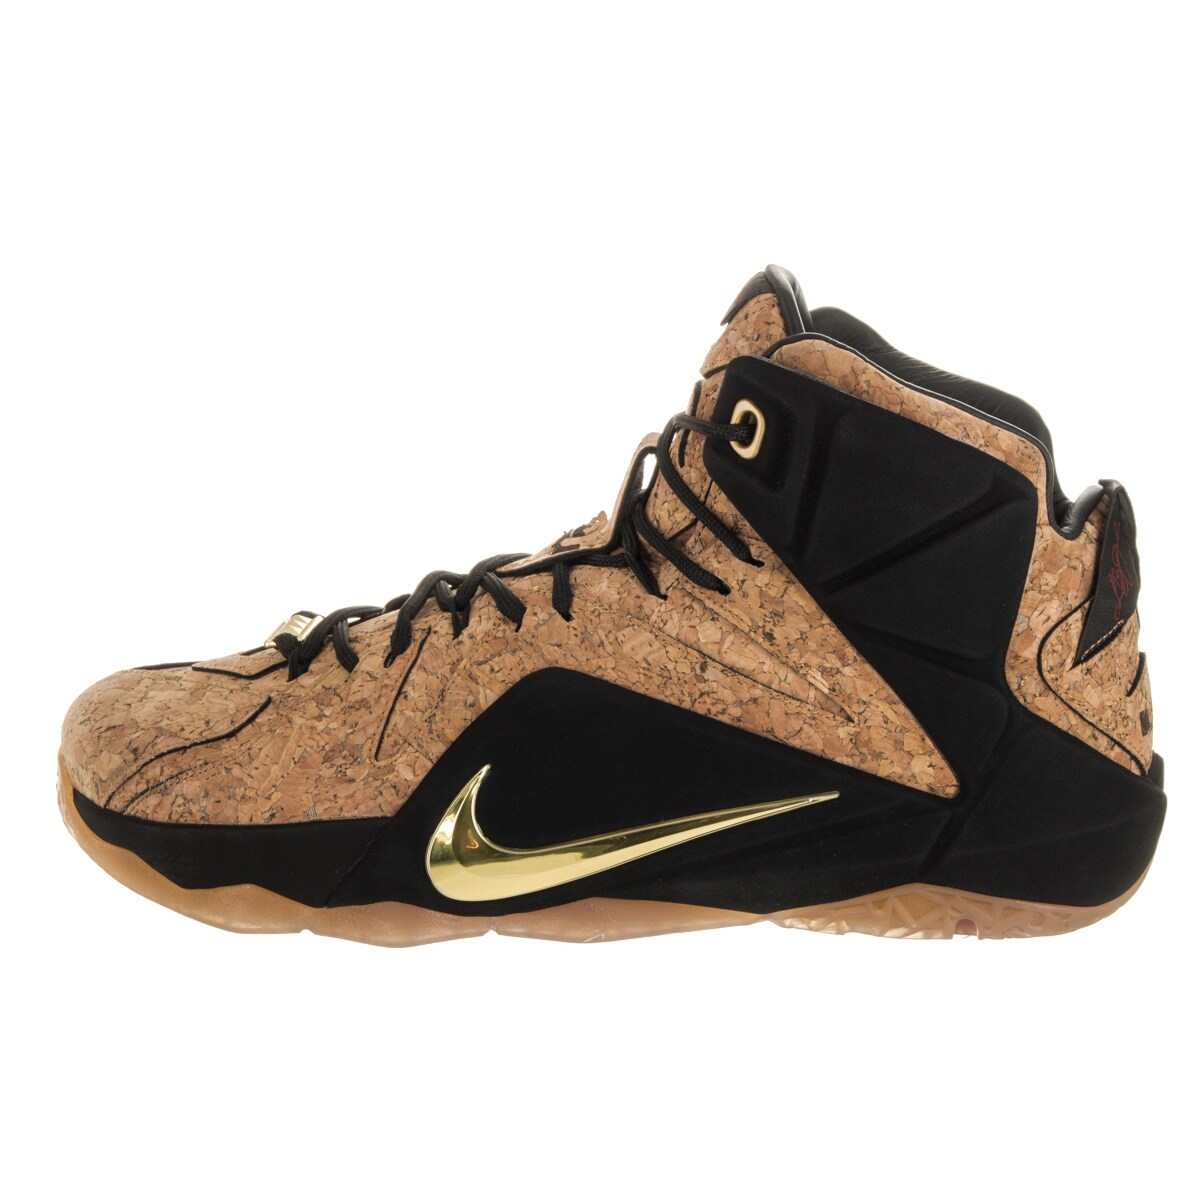 5b8ddc36496 Shop Nike Men s Lebron XII Ext Cork Black and Natural Synthetic Leather  Basketball Shoes - Free Shipping Today - Overstock - 13476412